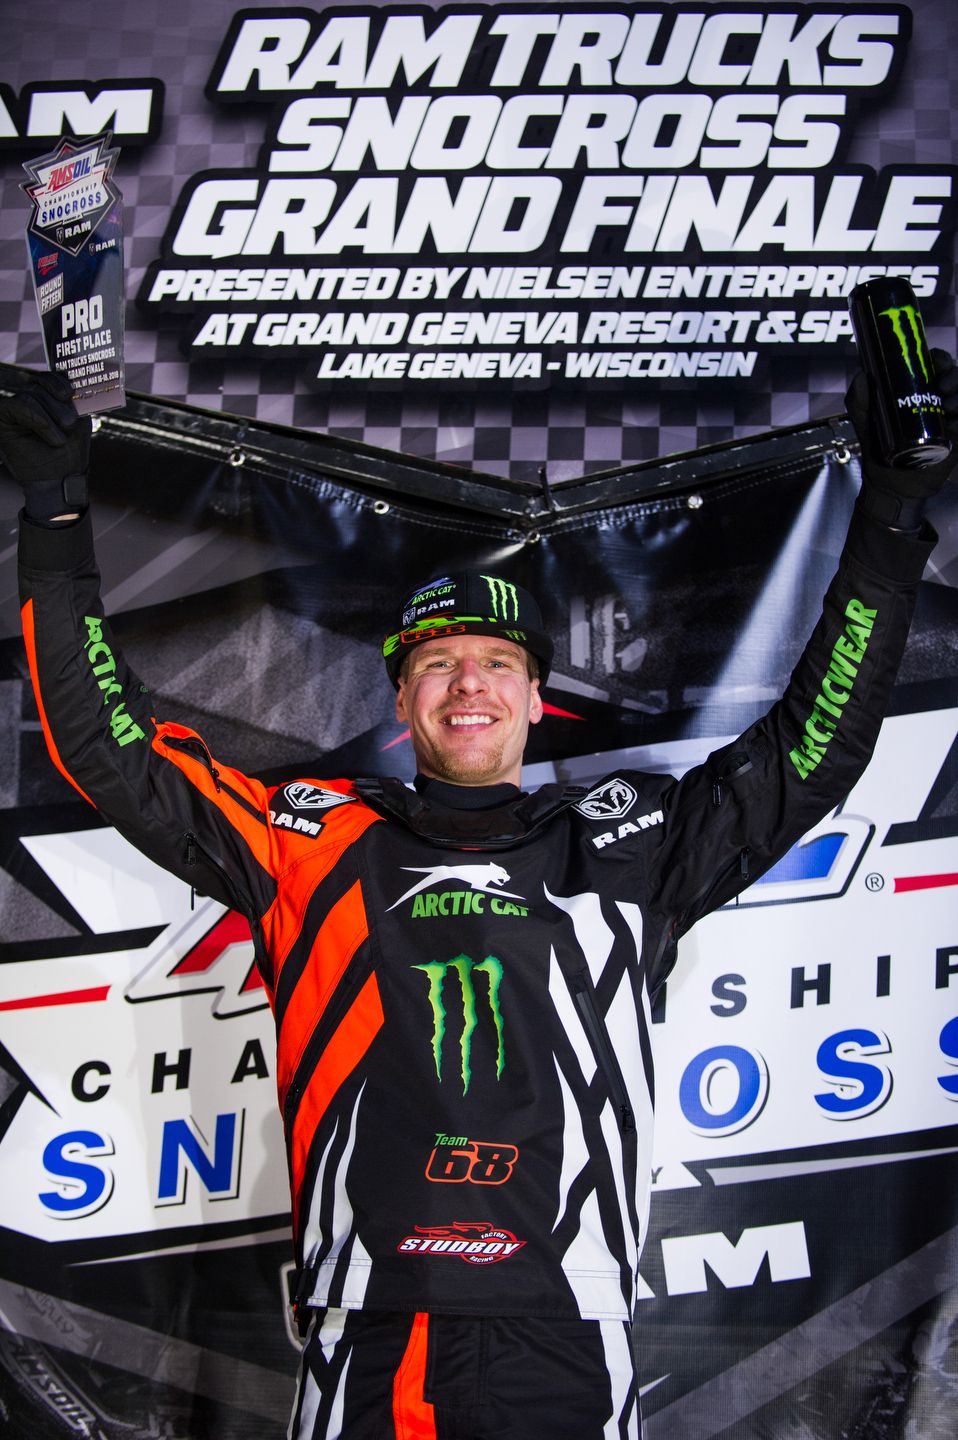 Hibbert claims 11th Pro National Snocross Championship